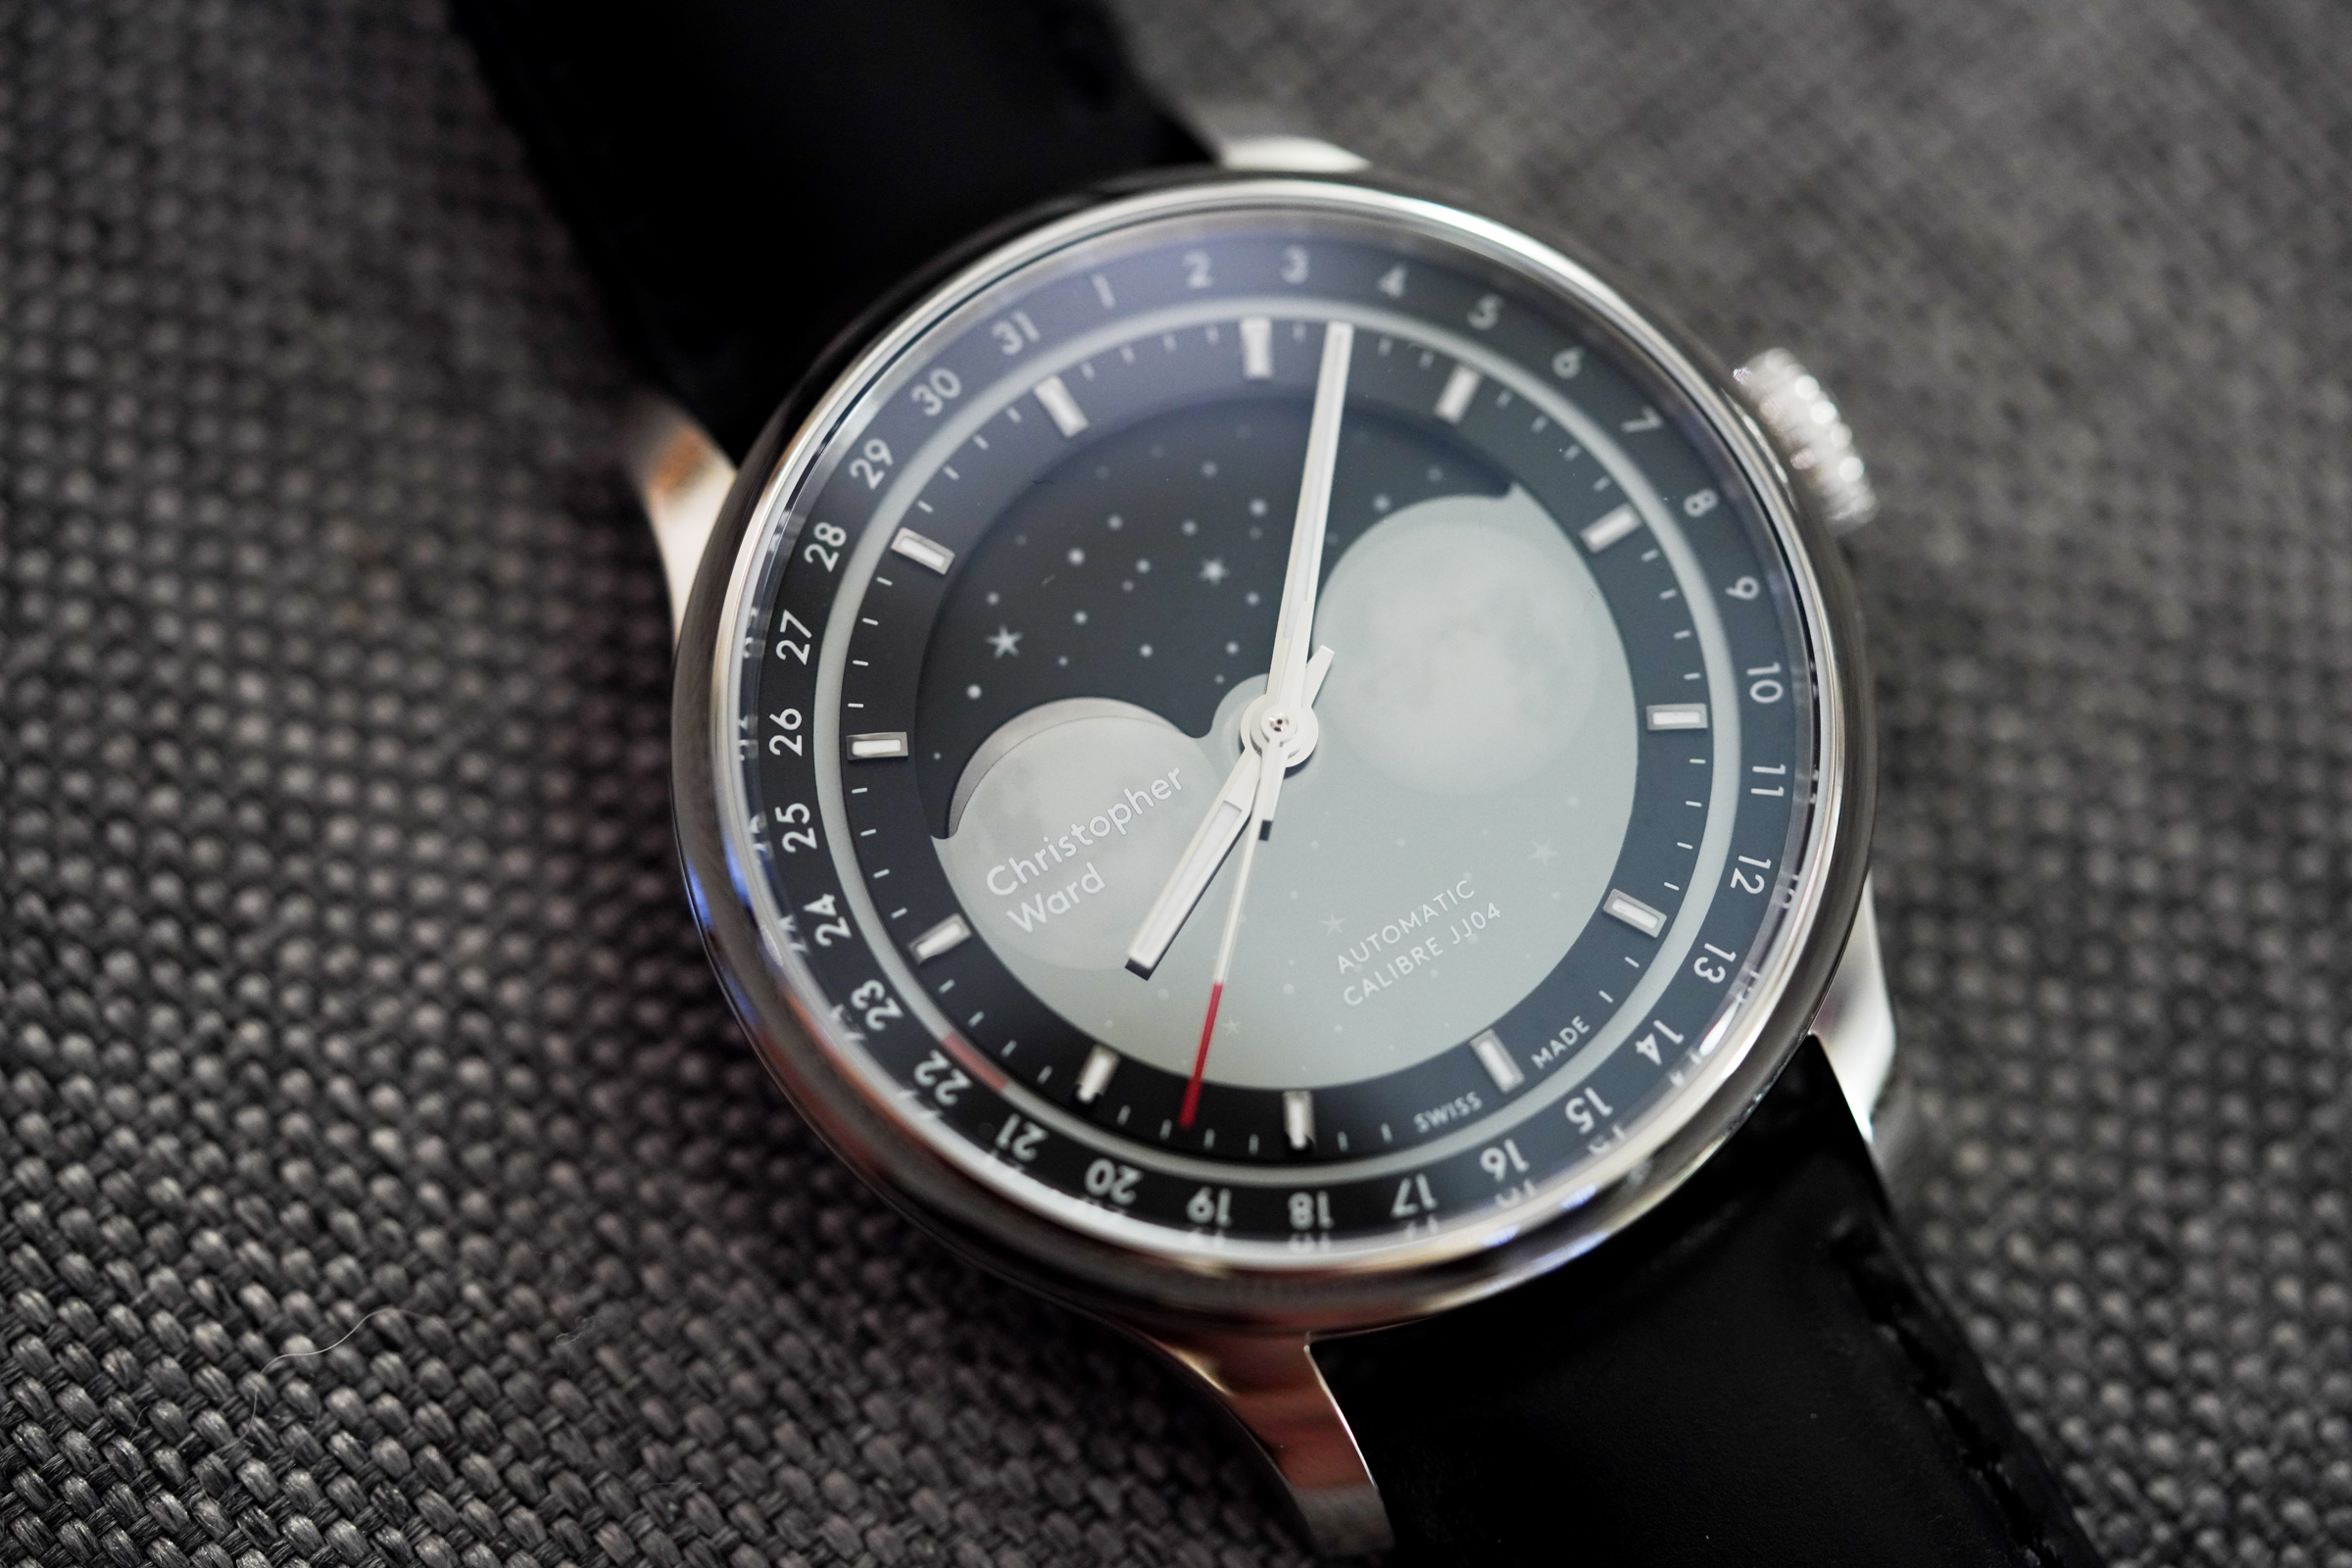 Christopher Ward's C1 Moonglow moonphase automatic watch is perfect for  space lovers   TechCrunch